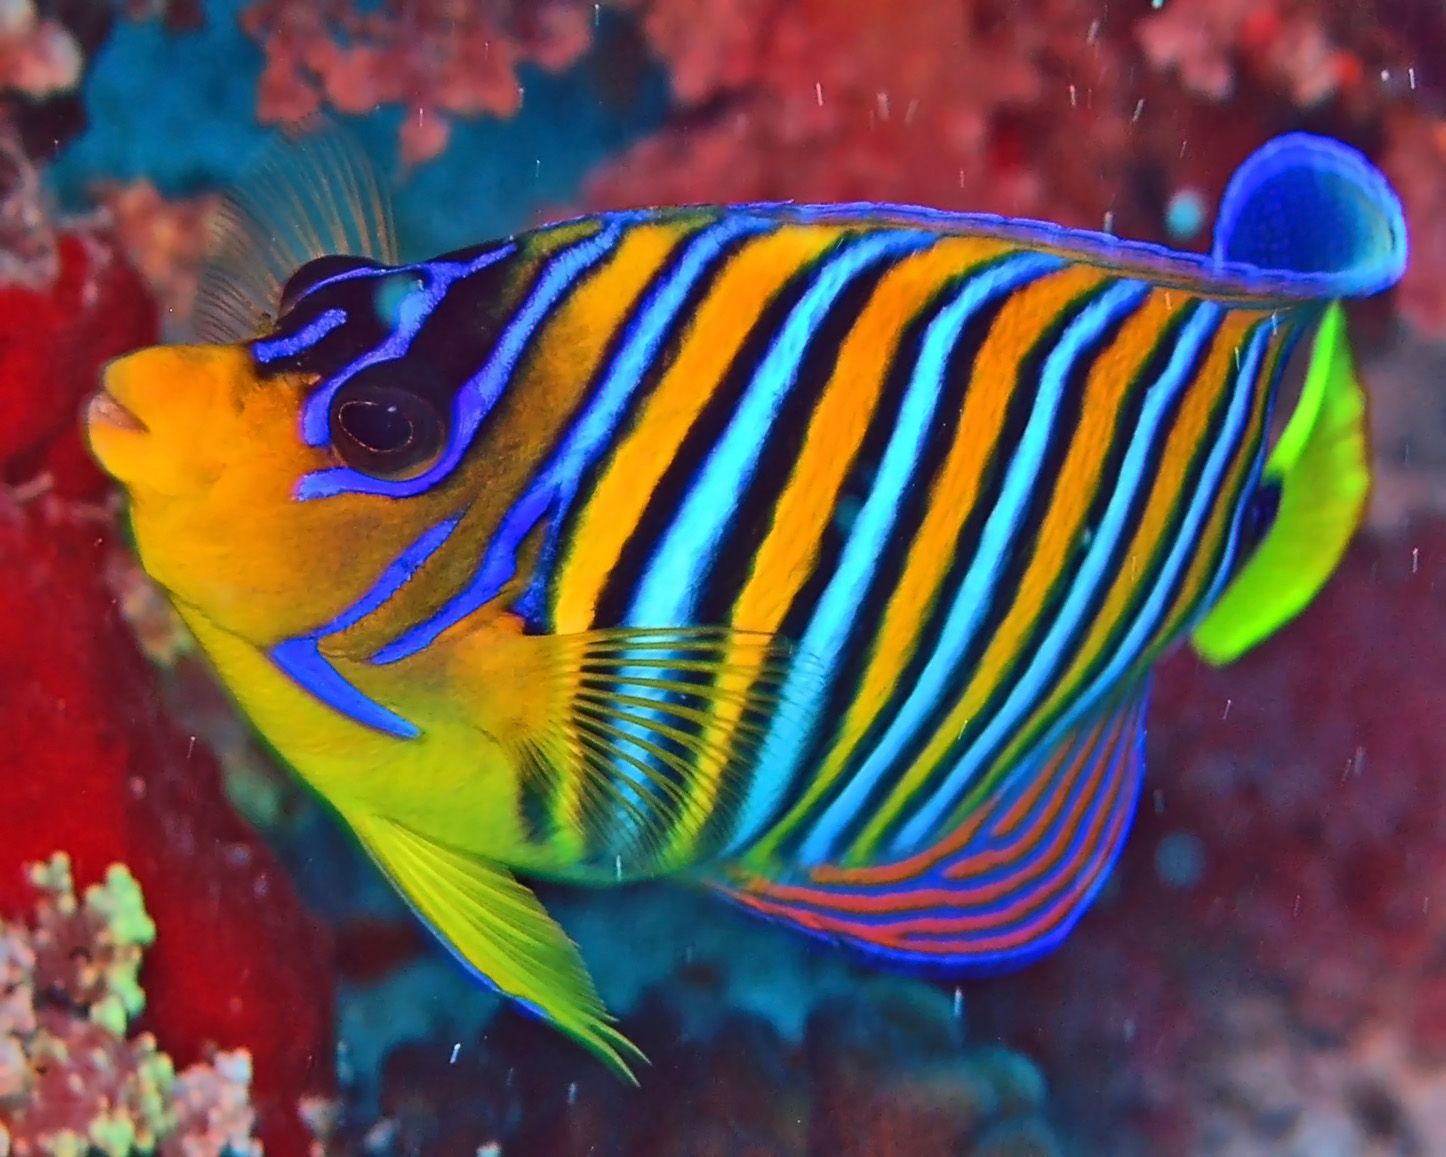 the coral reef royal angelfish olivia k